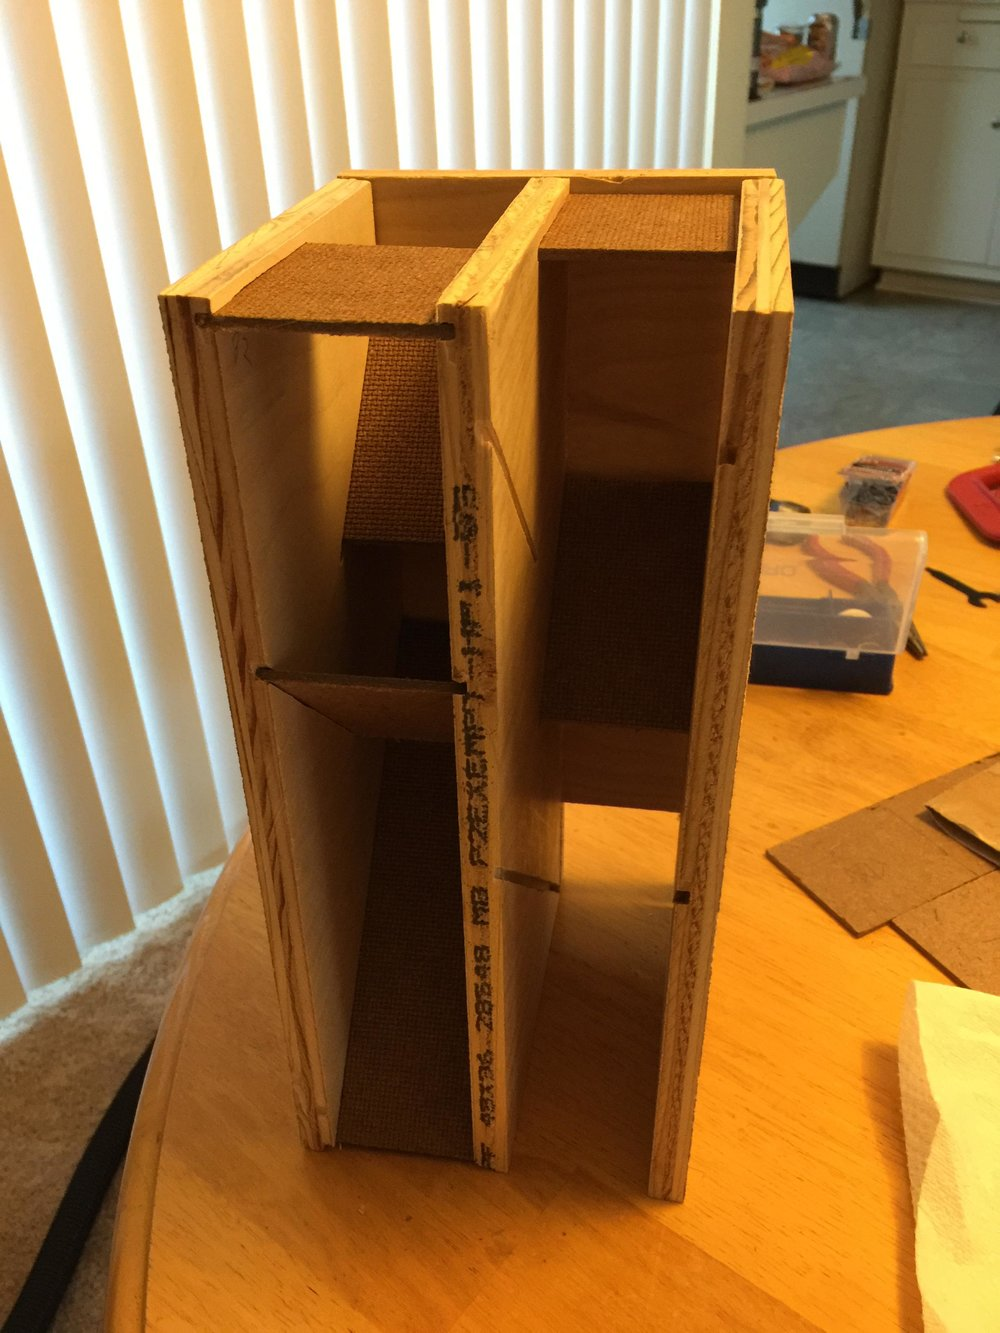 DM_screen_dice_tower_004.jpg